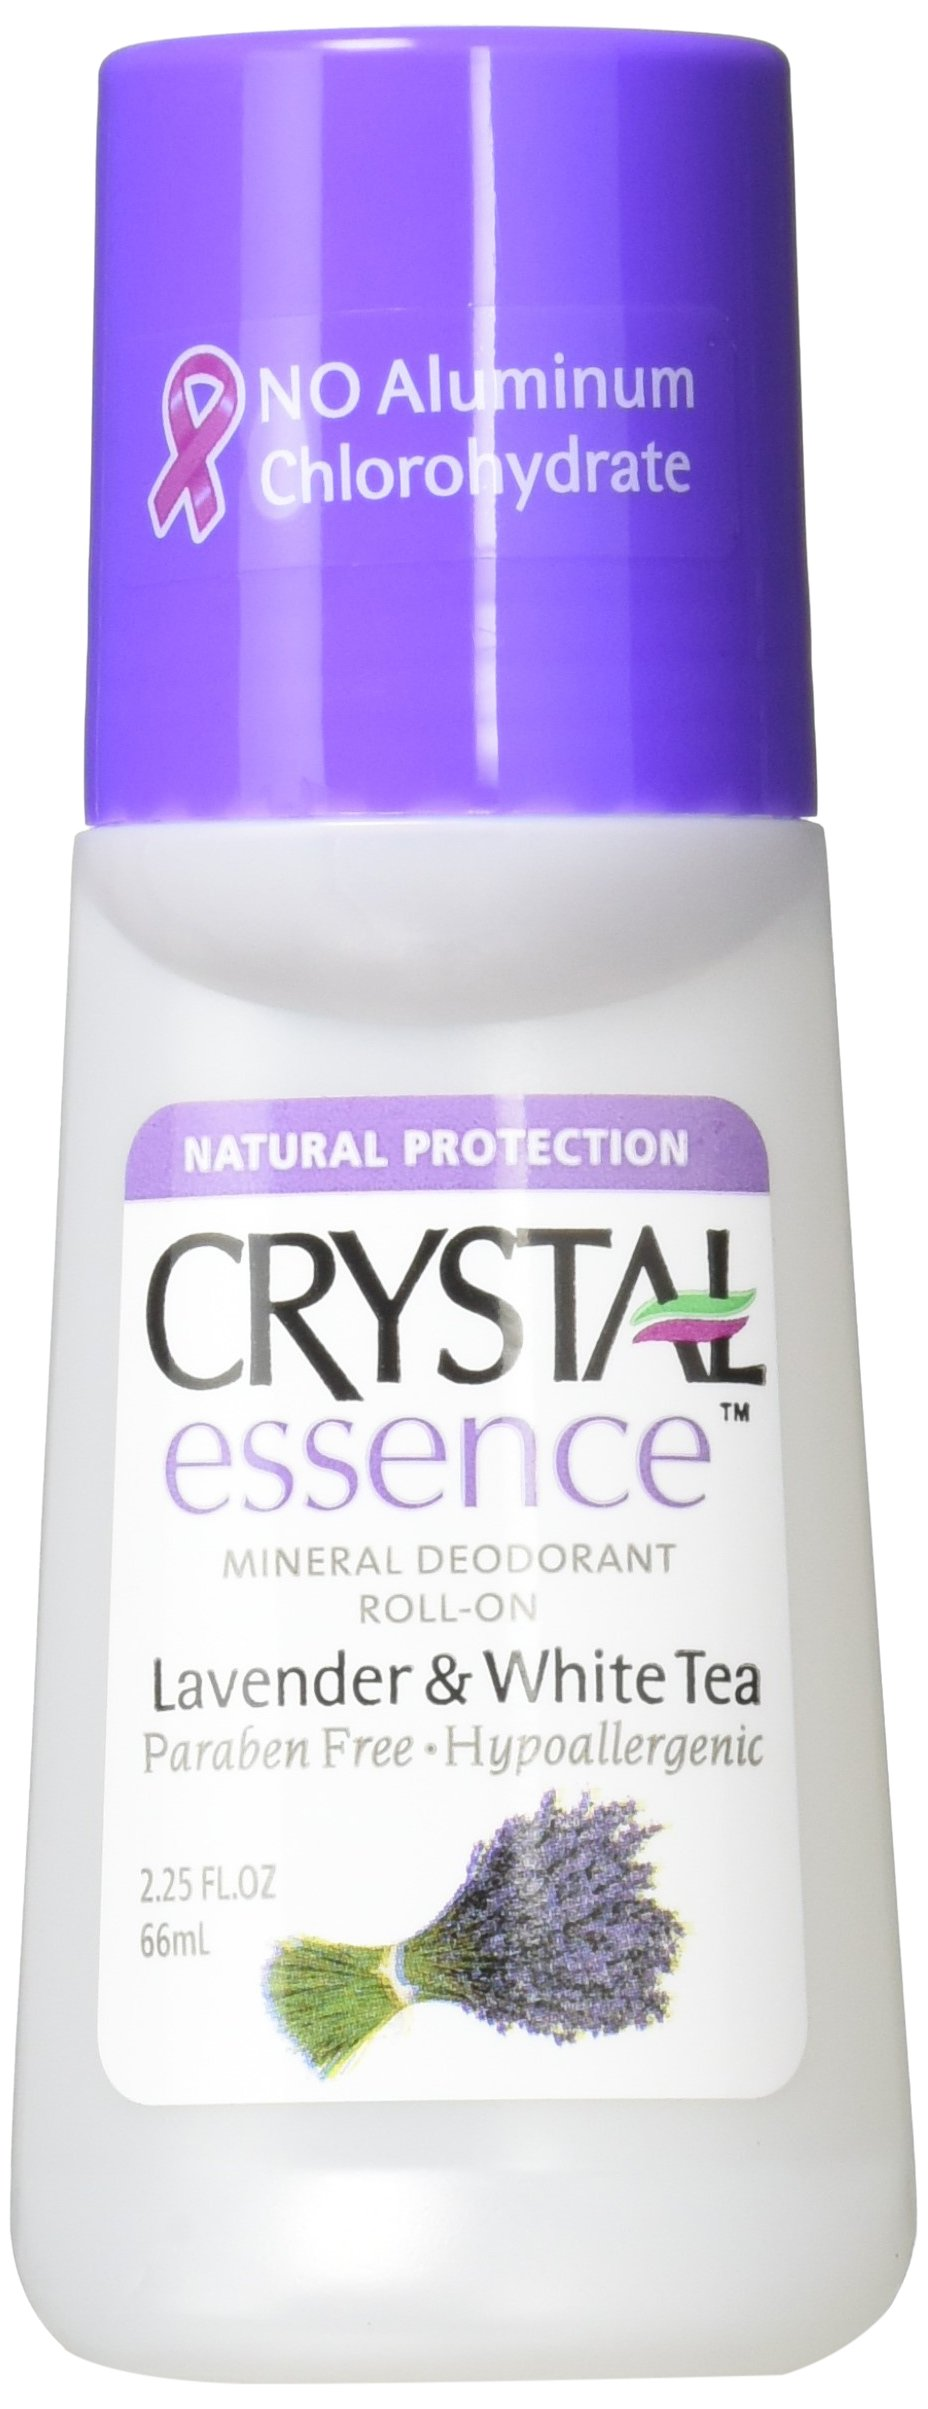 Crystal Roll On Deodorant Lavender and White Tea -- 2.25 fl oz, 2-pack